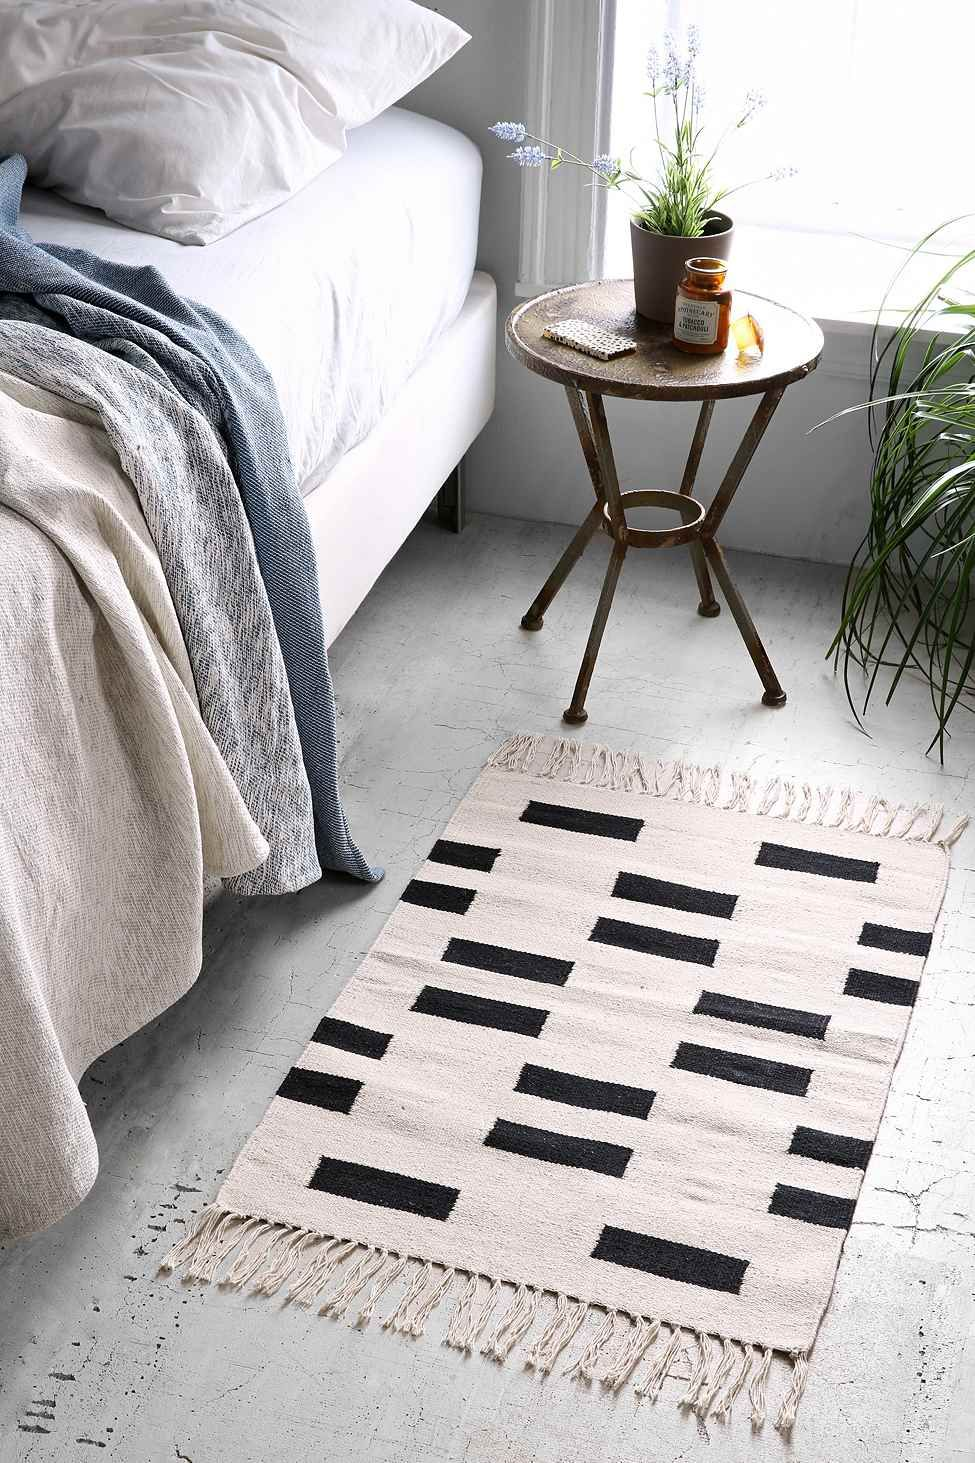 Image Result For 2x3 Rug Next To Twin Bed Gewobener Teppich